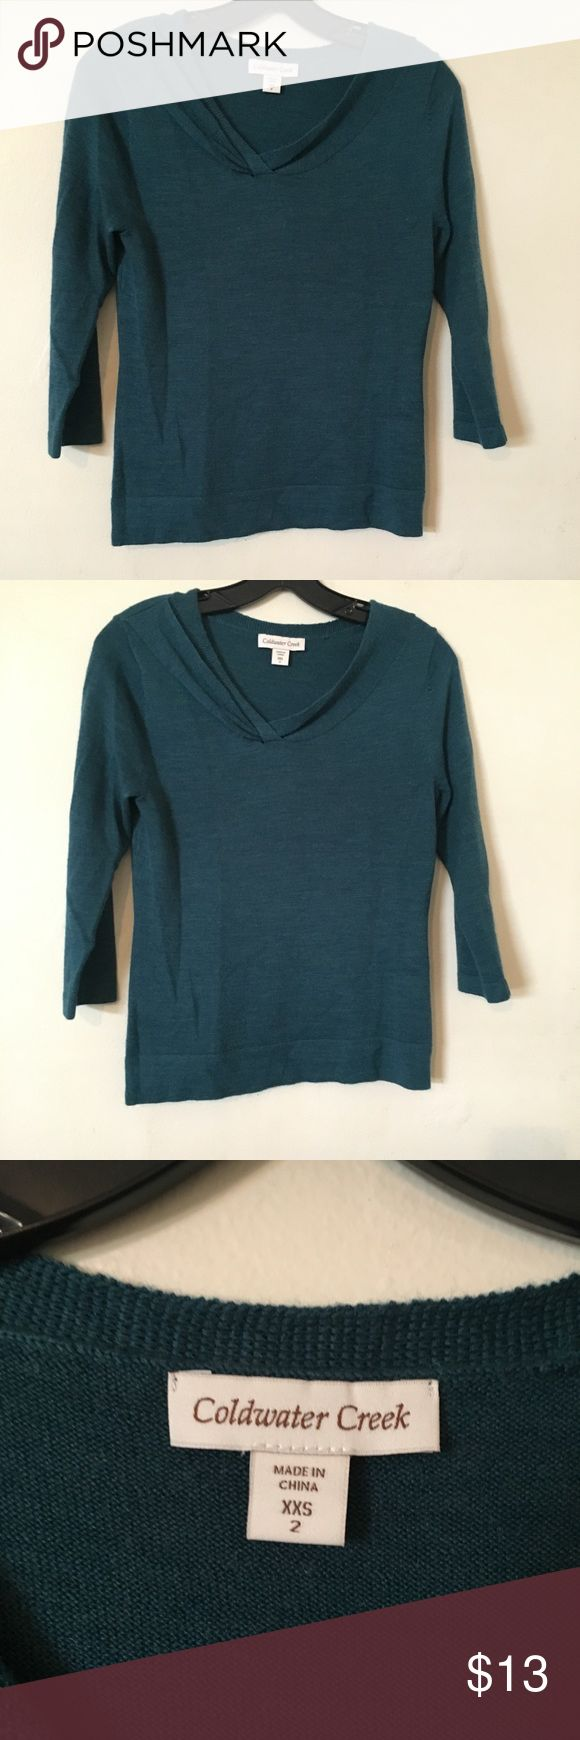 Coldwater Creek sweater size xxs Coldwater Creek sweater size xxs in good condition Coldwater Creek Sweaters